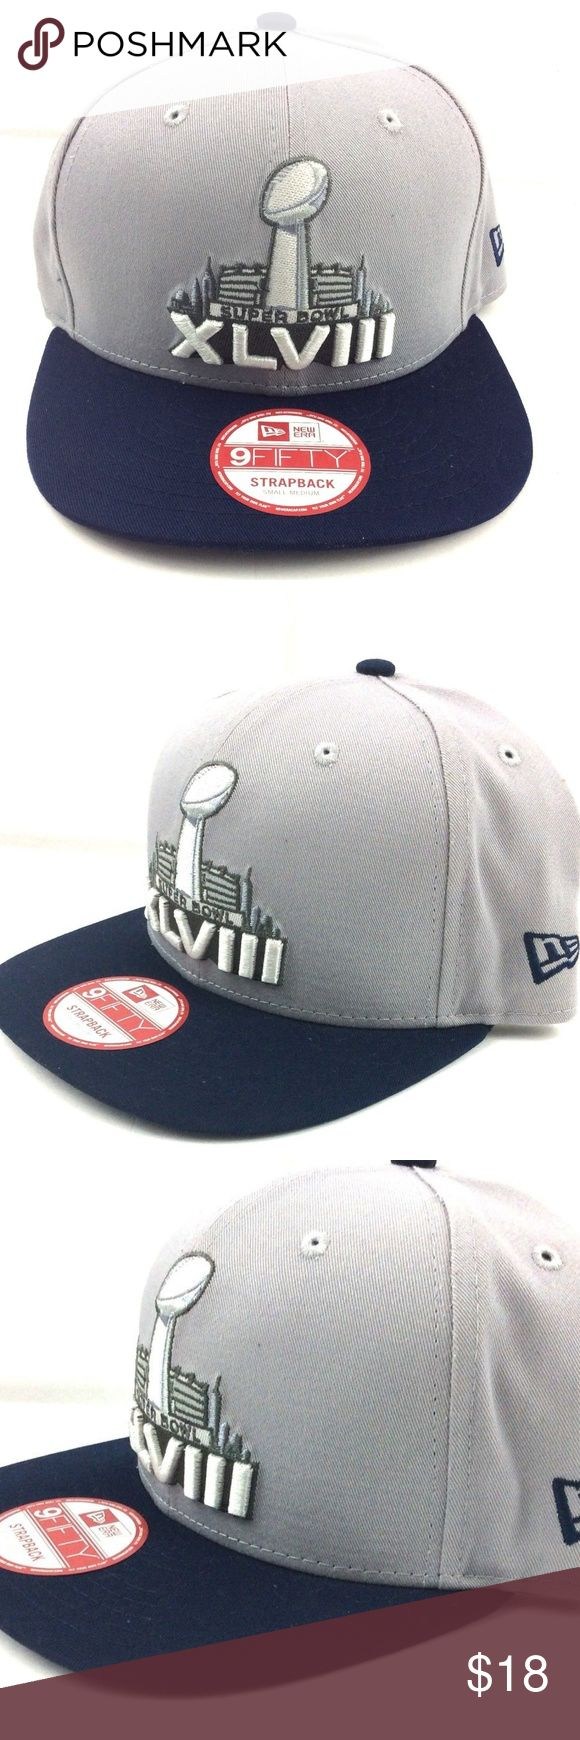 9 Fifty New Era Hat, Cap Super Bowl XLV111 9 Fifty New Era Hat, Cap Super Bowl XLV111 Blue/Gray Strapback Msrp 29$  • Nwot never used or wore  • Fast free safe shipping  • 100% cotton  • Made in China New Era Accessories Hats